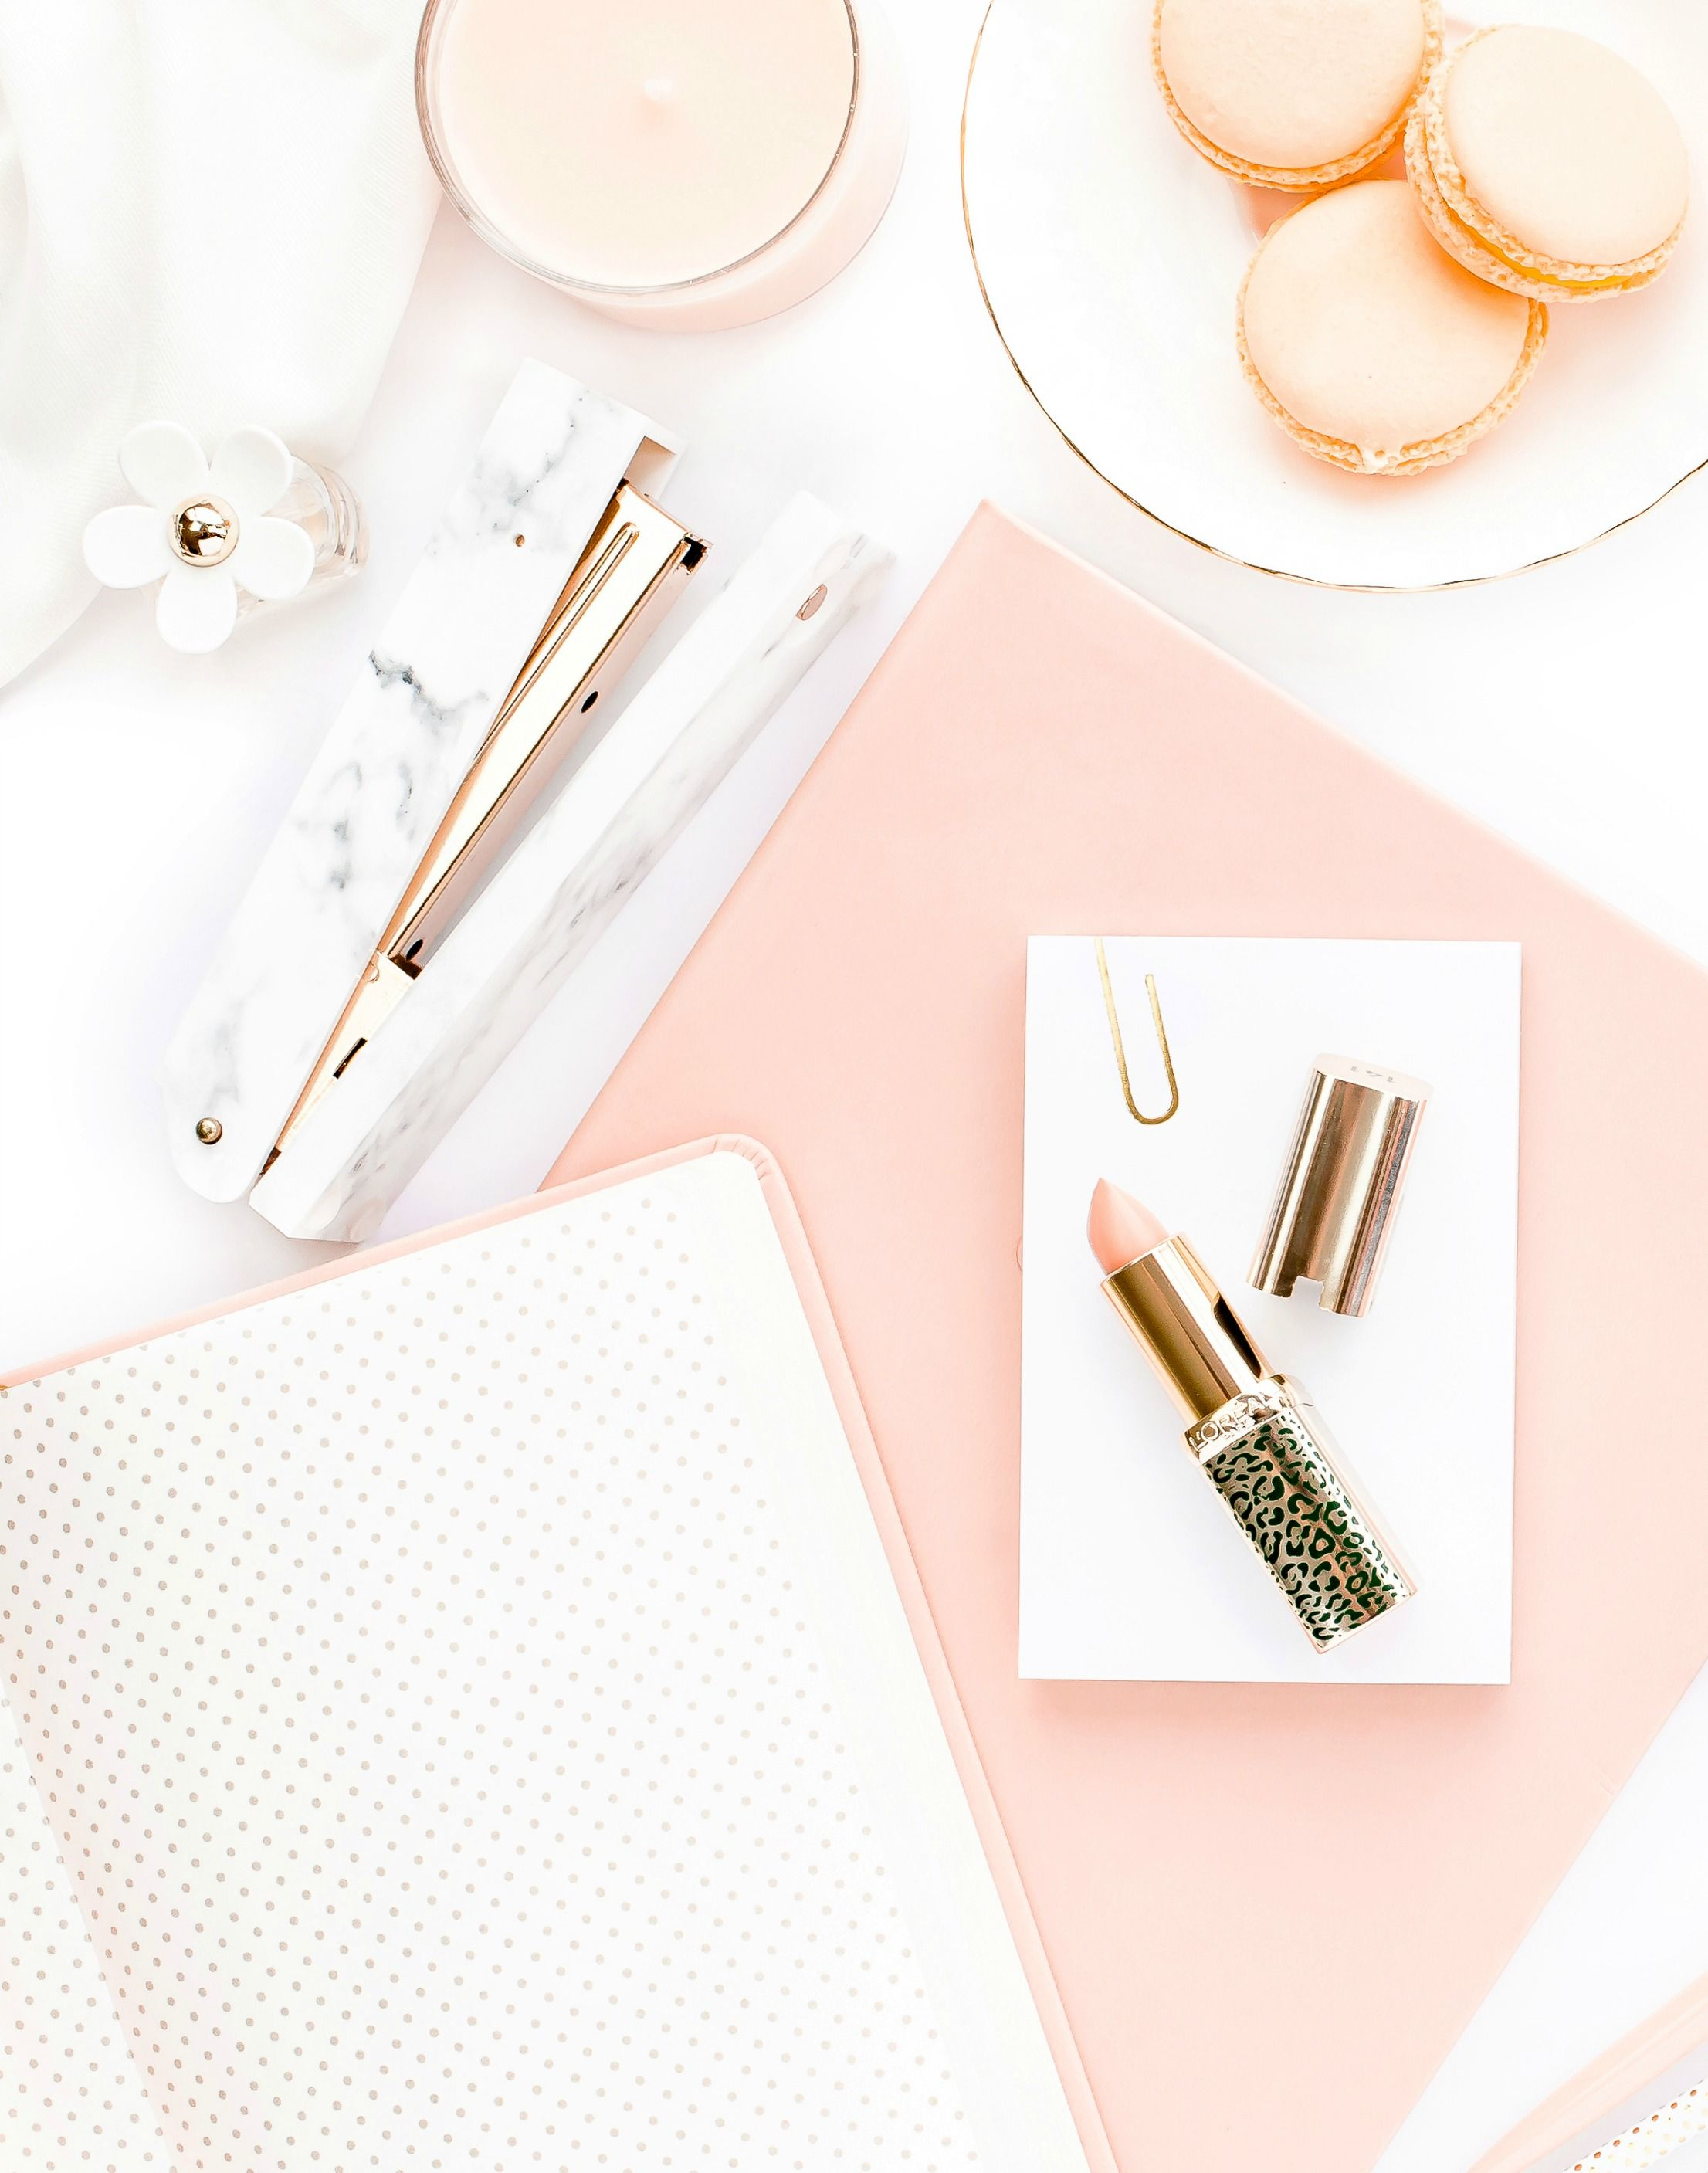 Are you looking for the best drugstore makeup products to help you save some serious cash without sacrificing quality? Be on the lookout for these products!